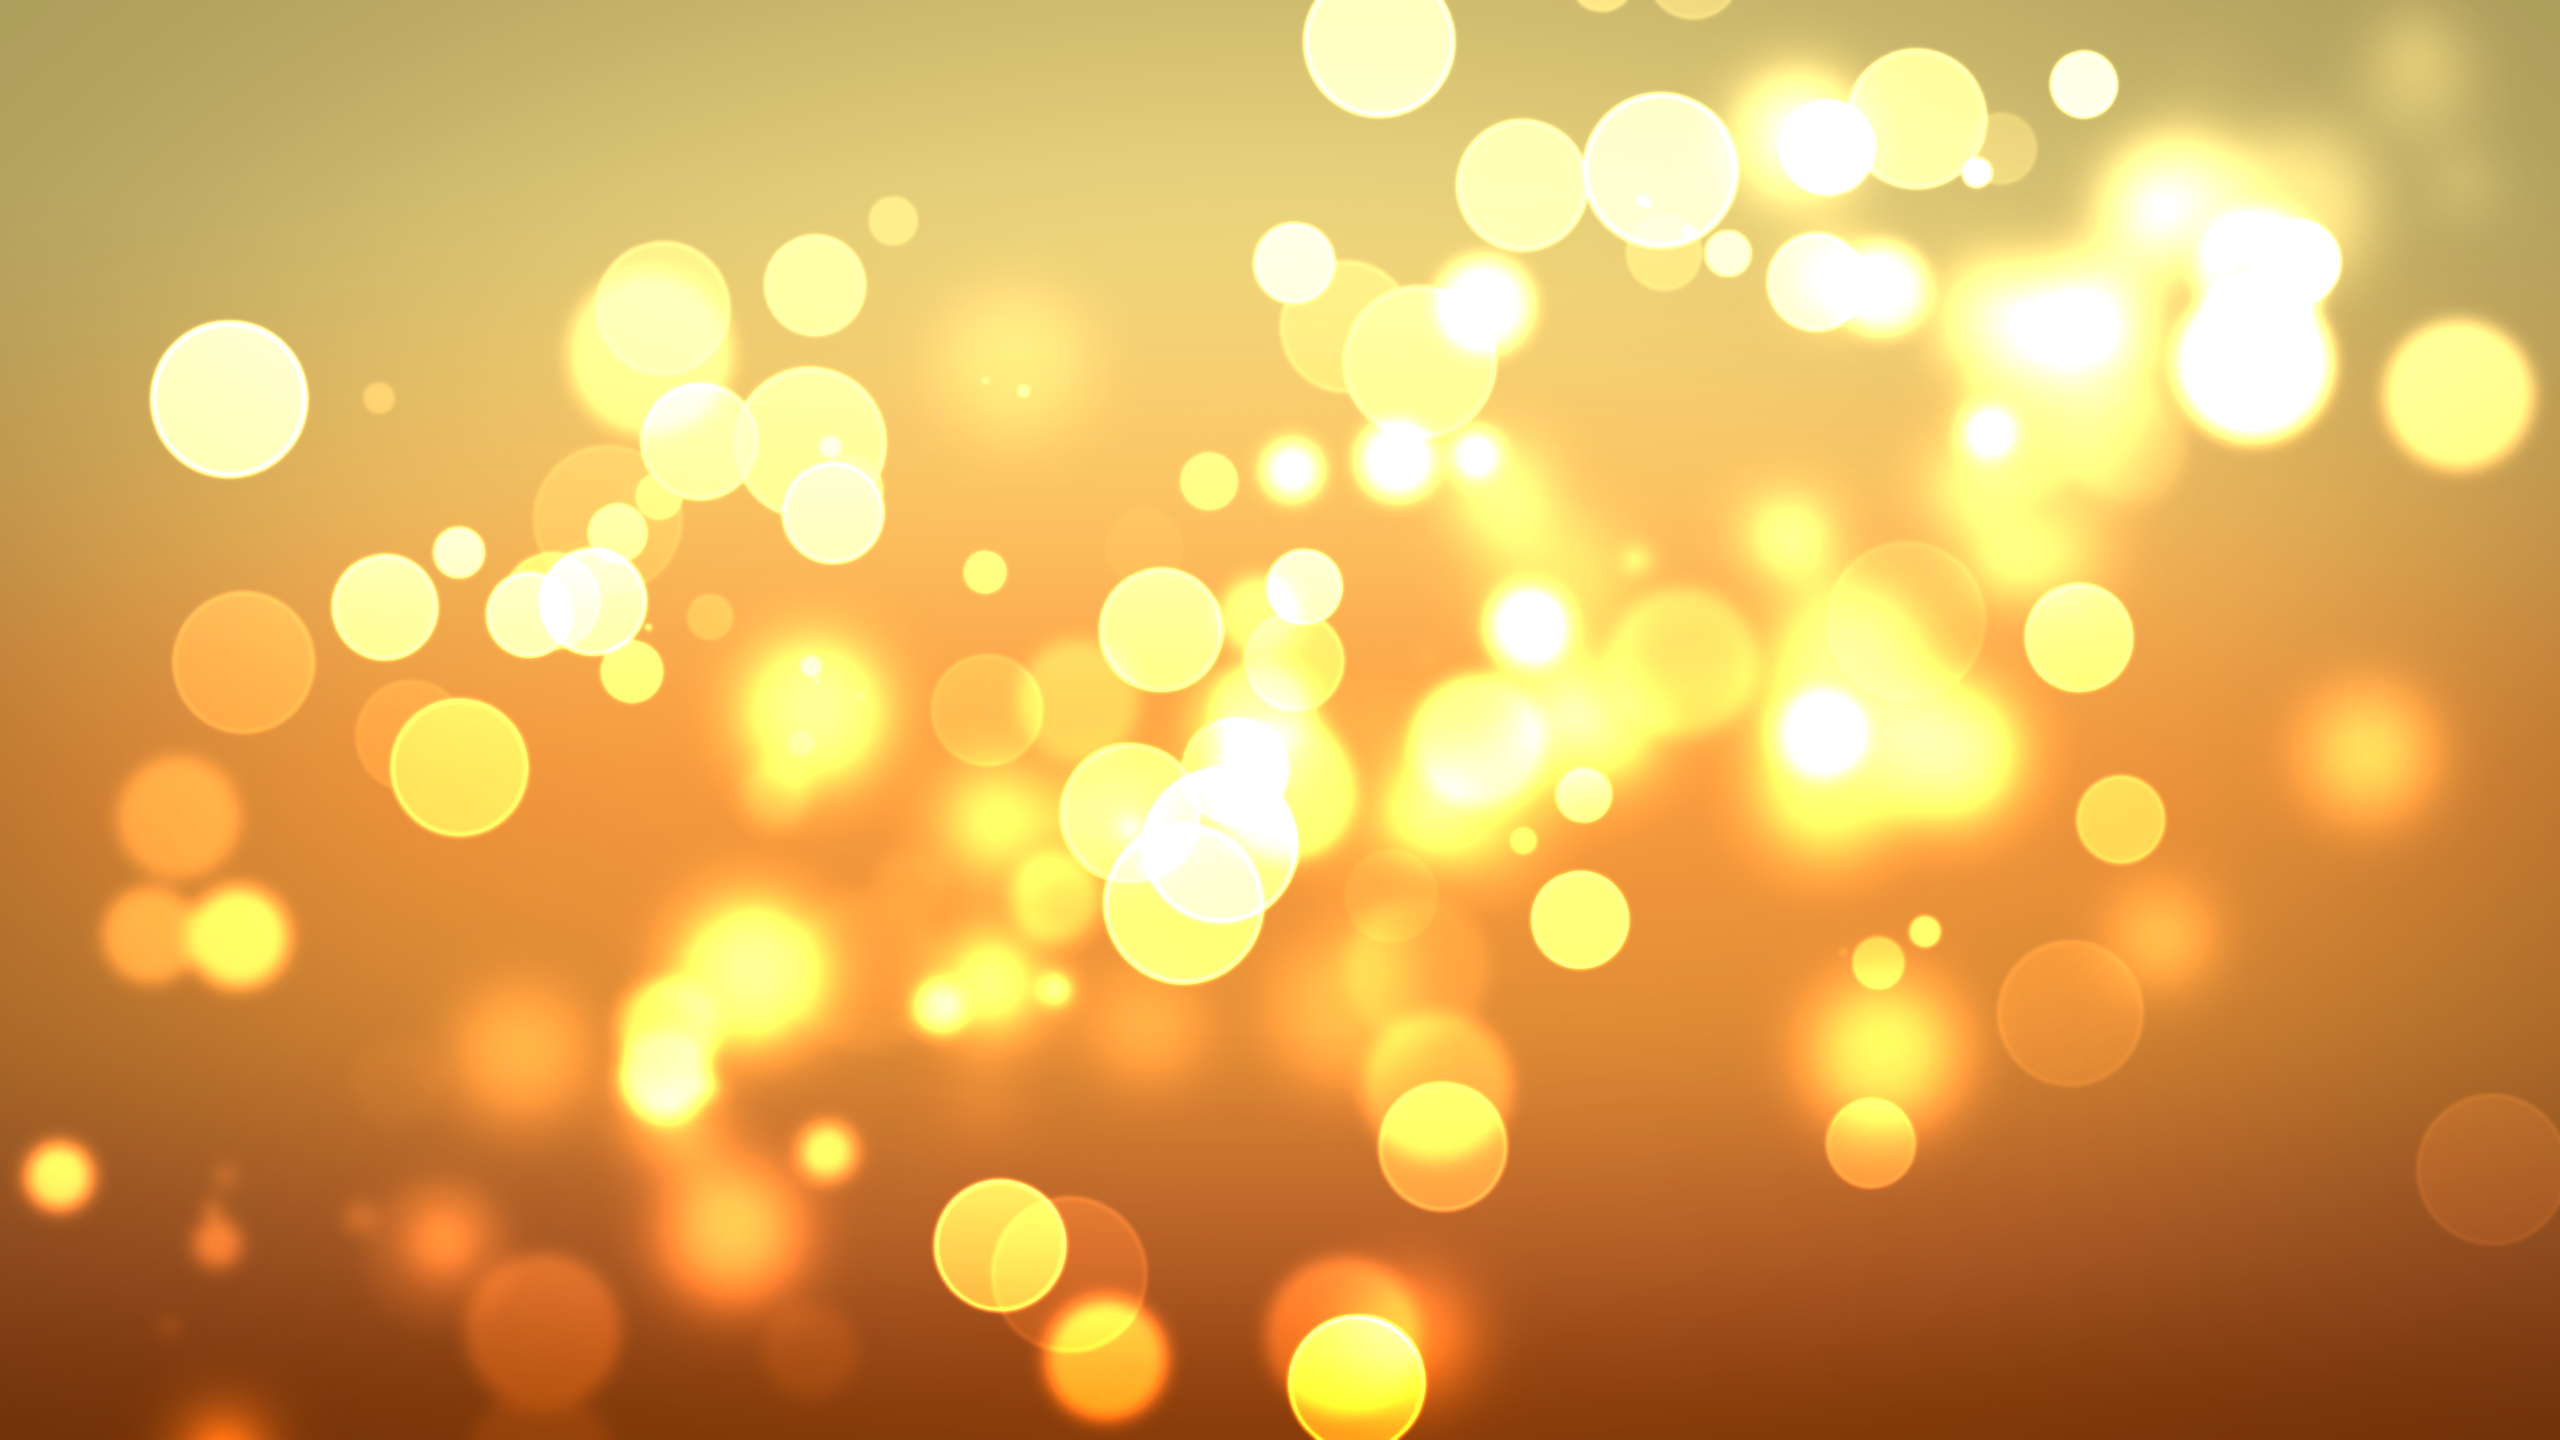 Golden circles of light wallpaper 16417 2560x1440